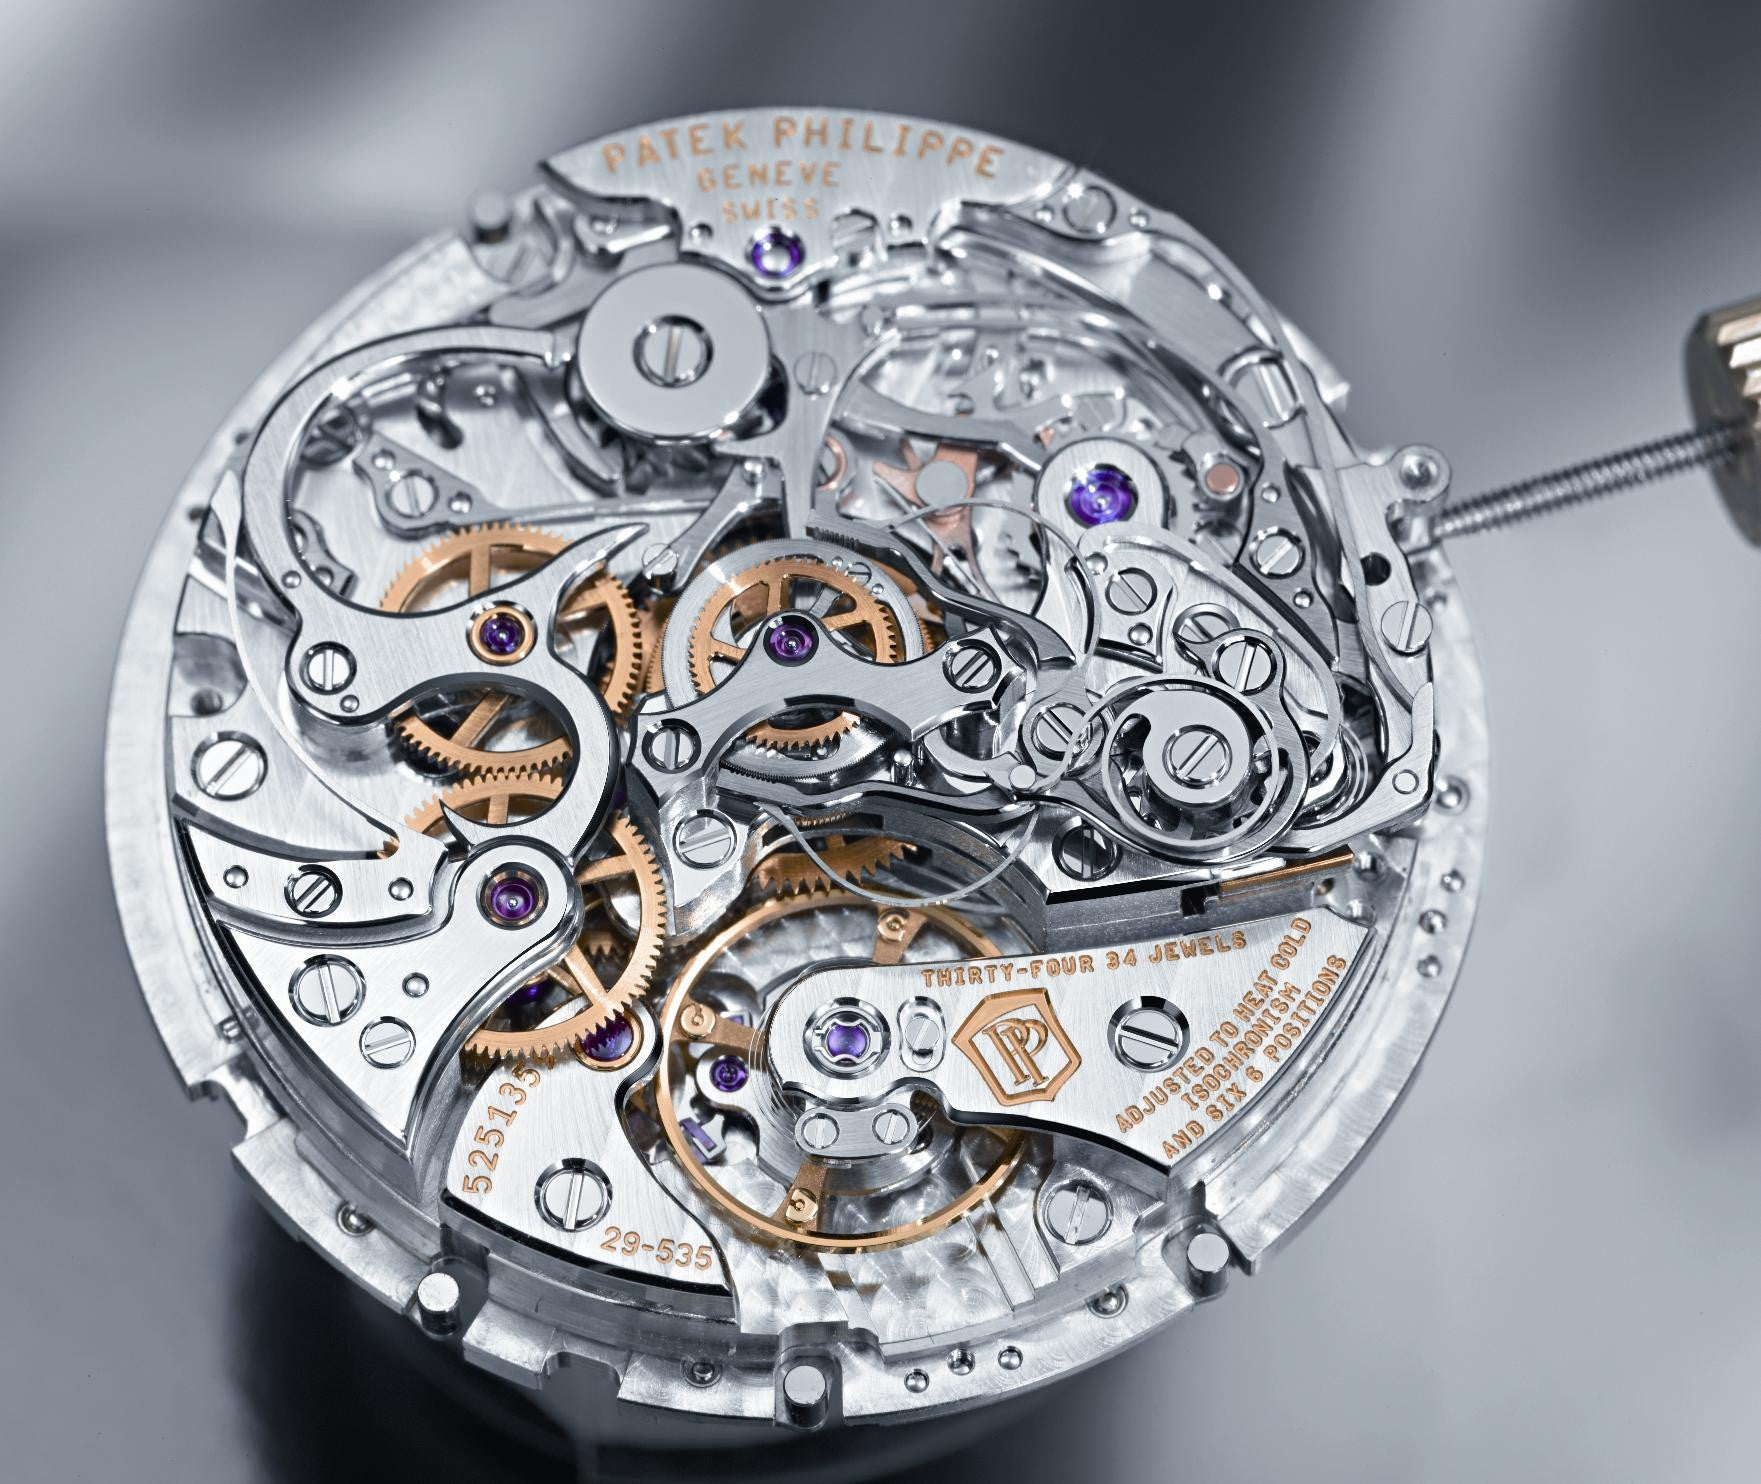 Quartz, Manual or Automatic? Choosing the Right Brega Watch Movement for You